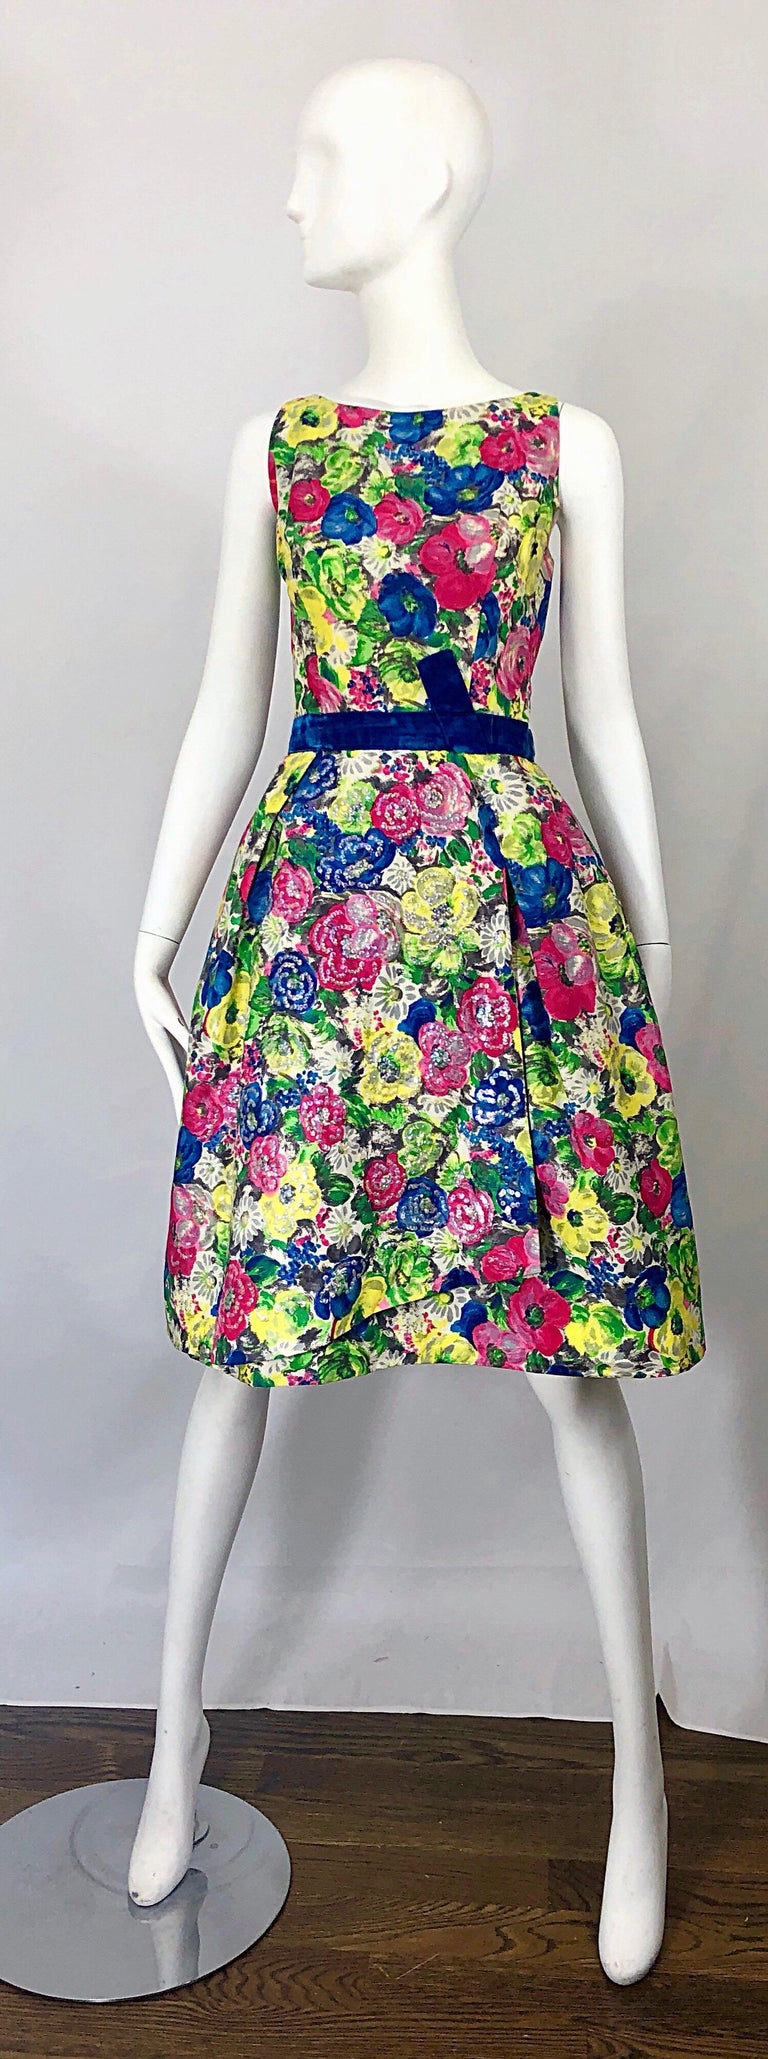 Gorgeous 50s demi couture sequined fit n' flare floral watercolor sequined silk dress! This is one of my personal favorite pieces, not only because it is so prettty, but because of the insane attention to detail with the construction of the dress.